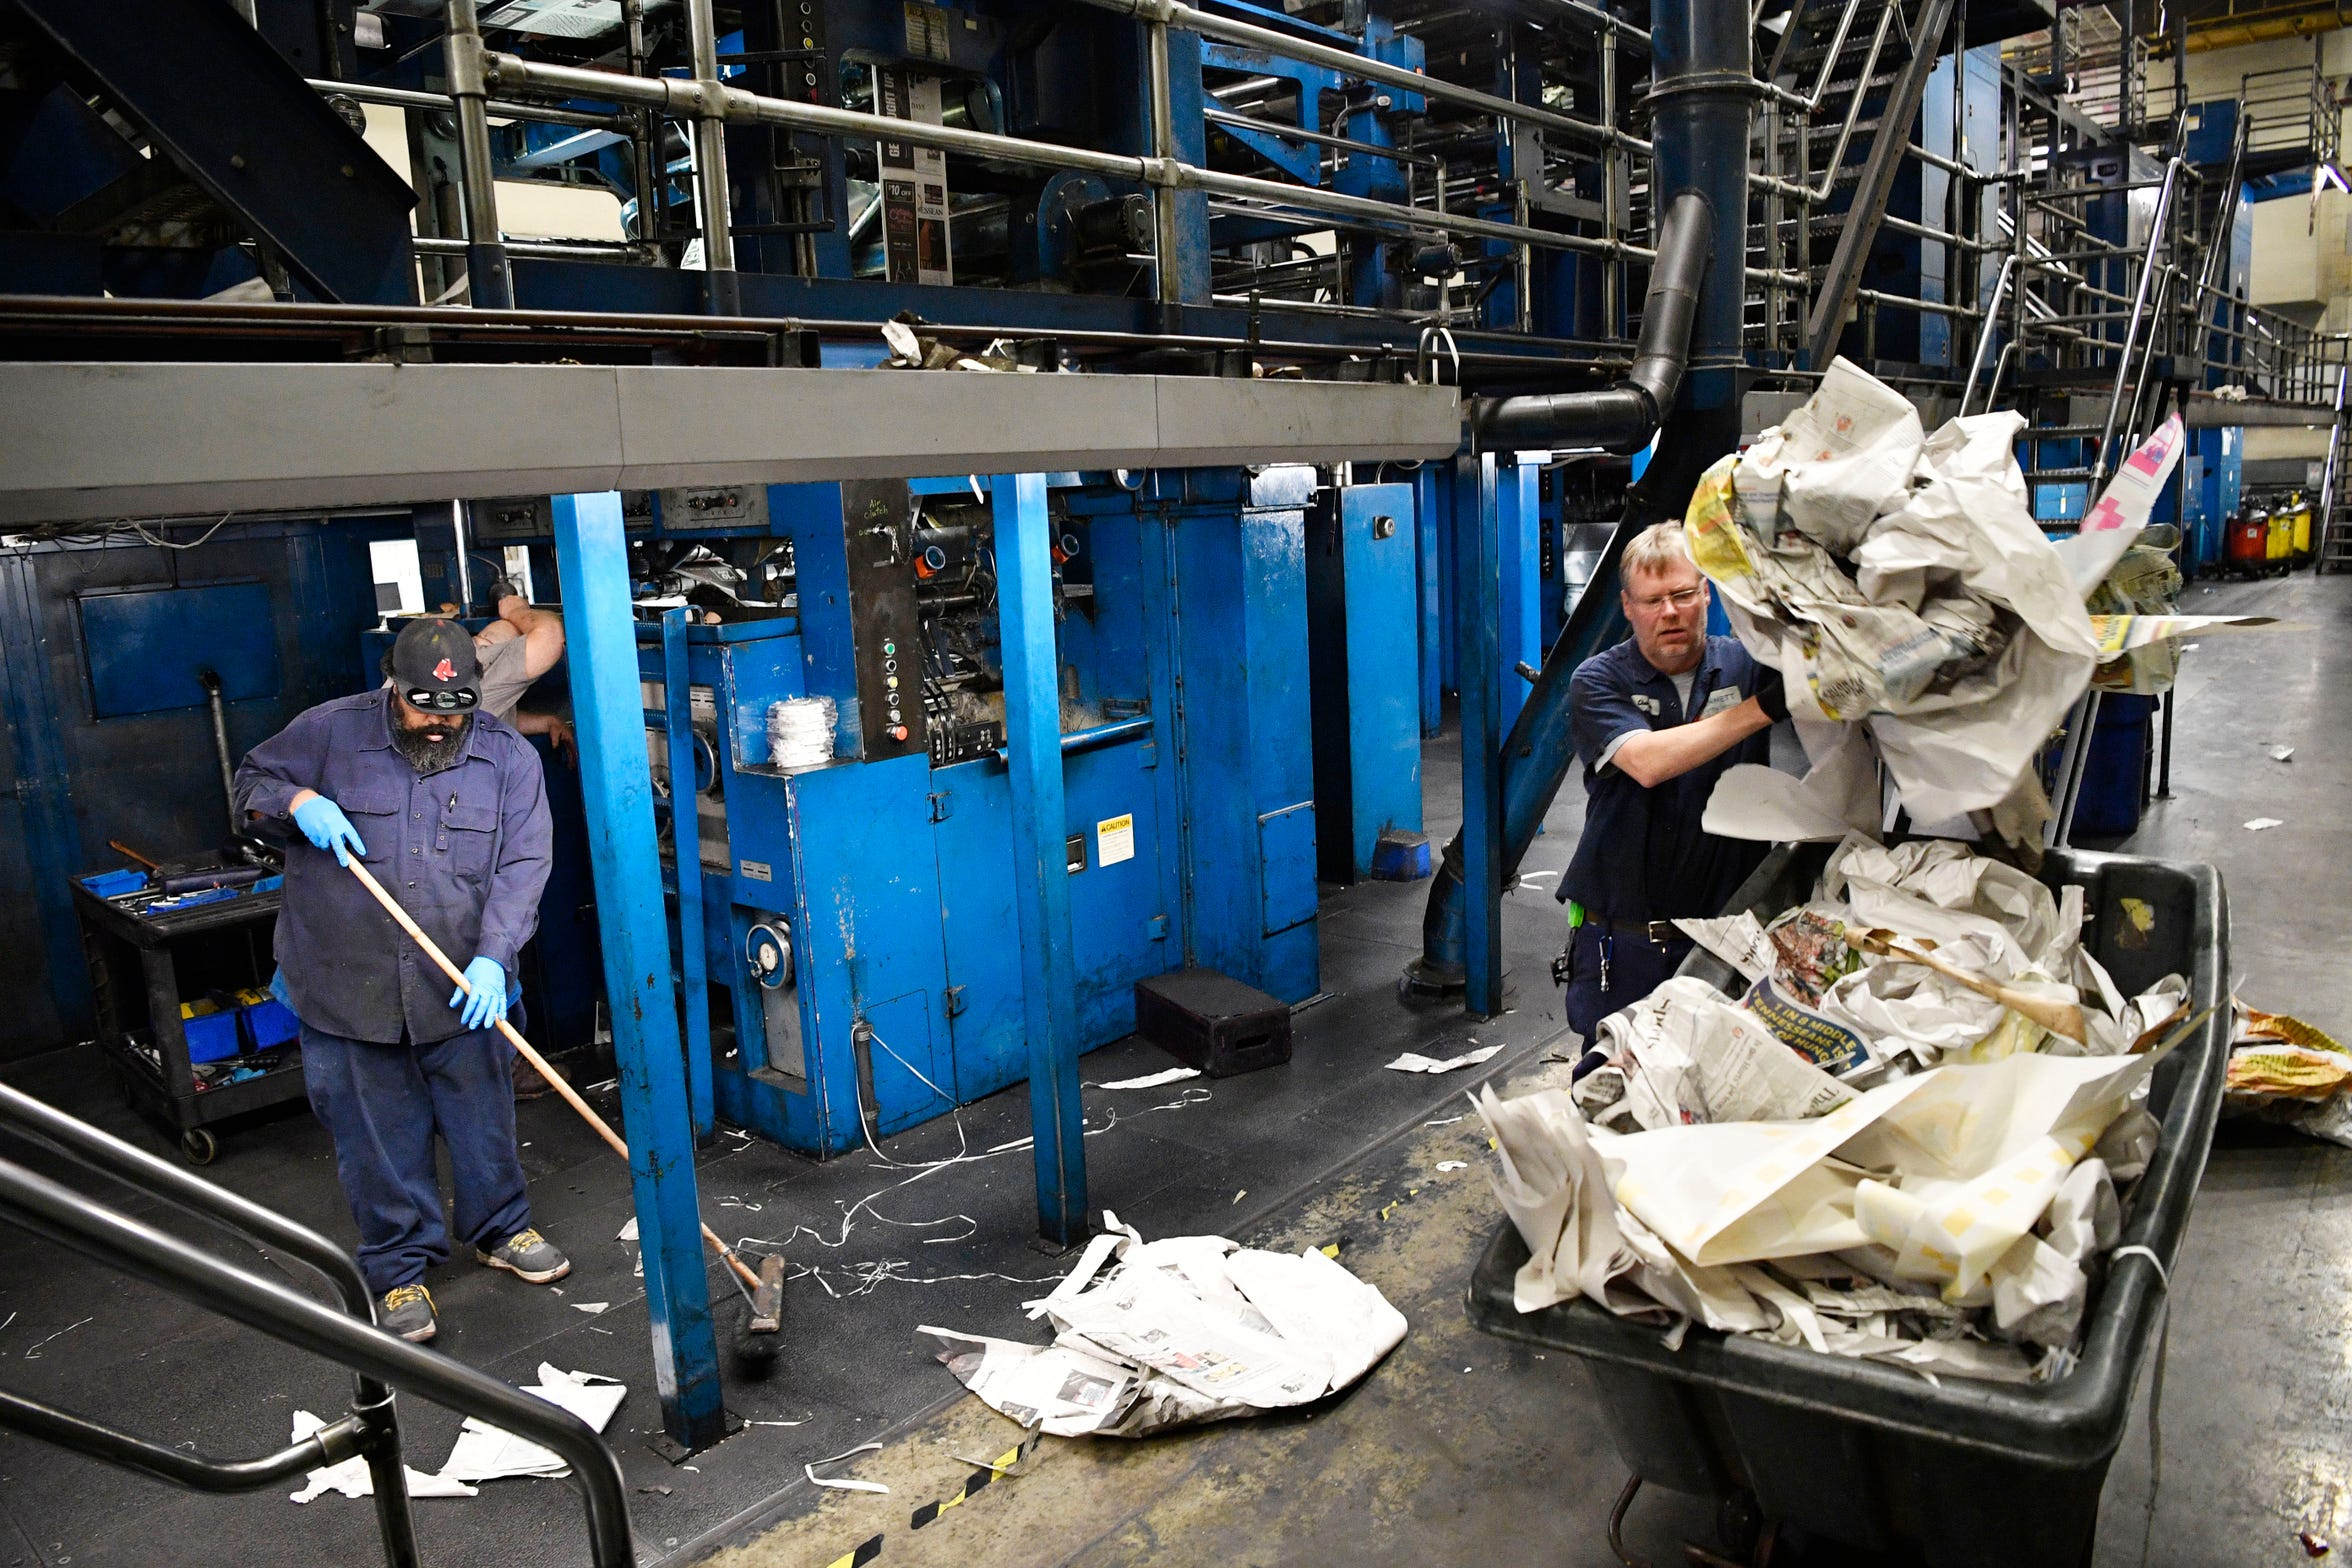 Tennessean pressmen clean up after printing the Thanksgiving Day paper Wednesday, Nov. 21, 2018, in Nashville, Tenn.